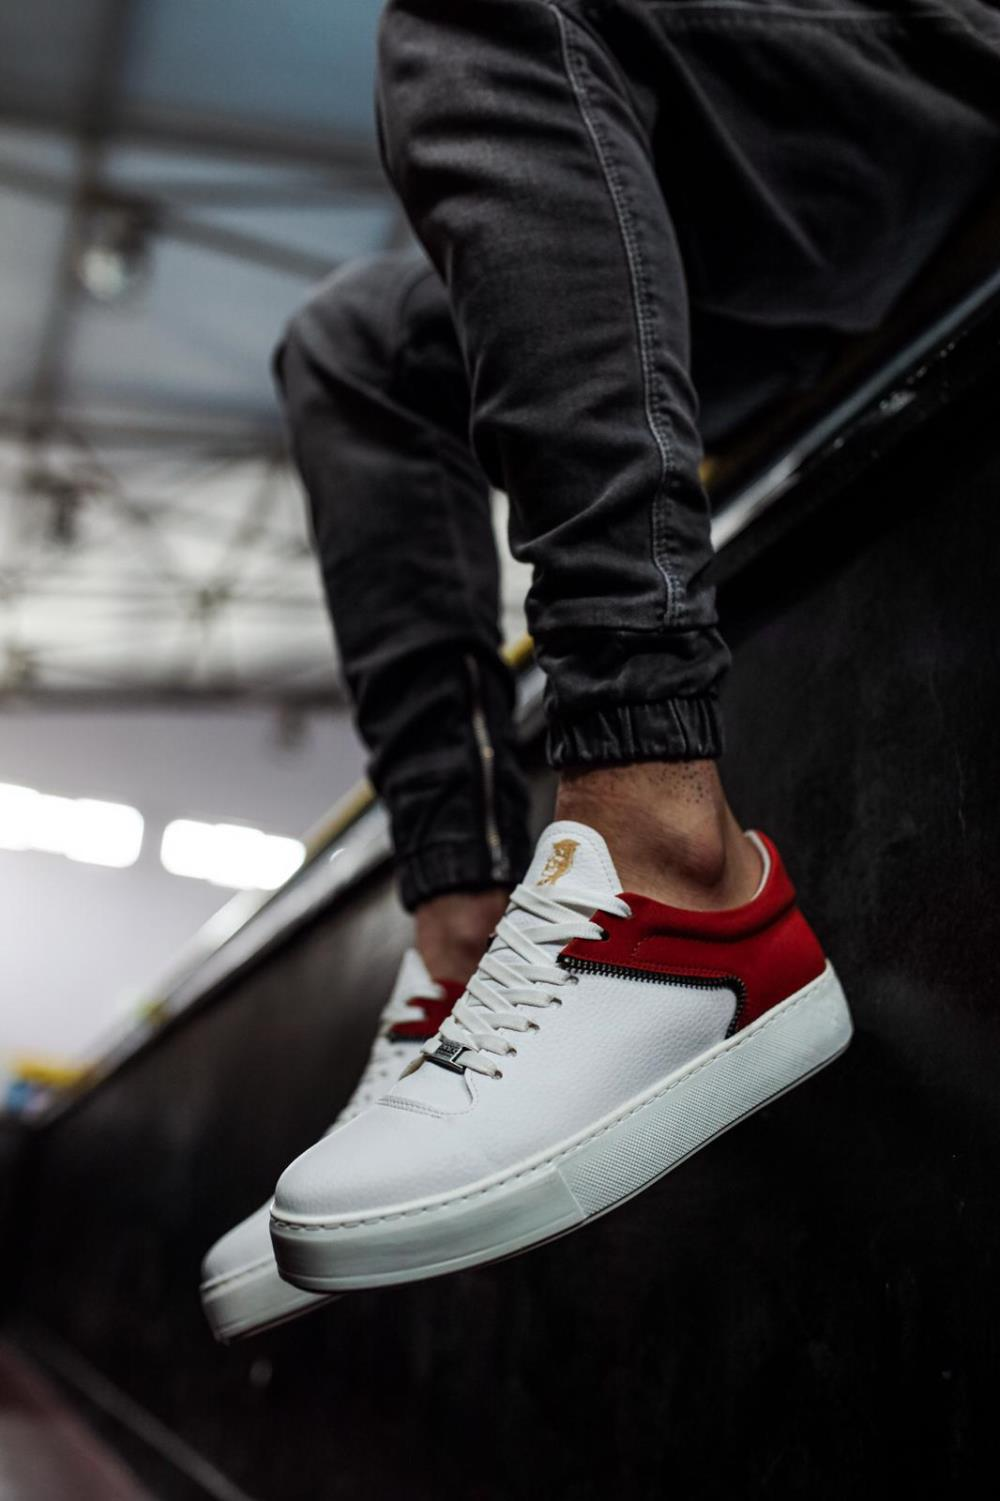 Knack Men Shoes Red and White Artificial Leather Lace Up Mixed Color Four Seasons 2021 Shoes Men Shoes Shoes For Men With Free Shipping Luxury Shoes Safety Shoes Designer Shoes  Shoes Men Original Sneakers Men  099